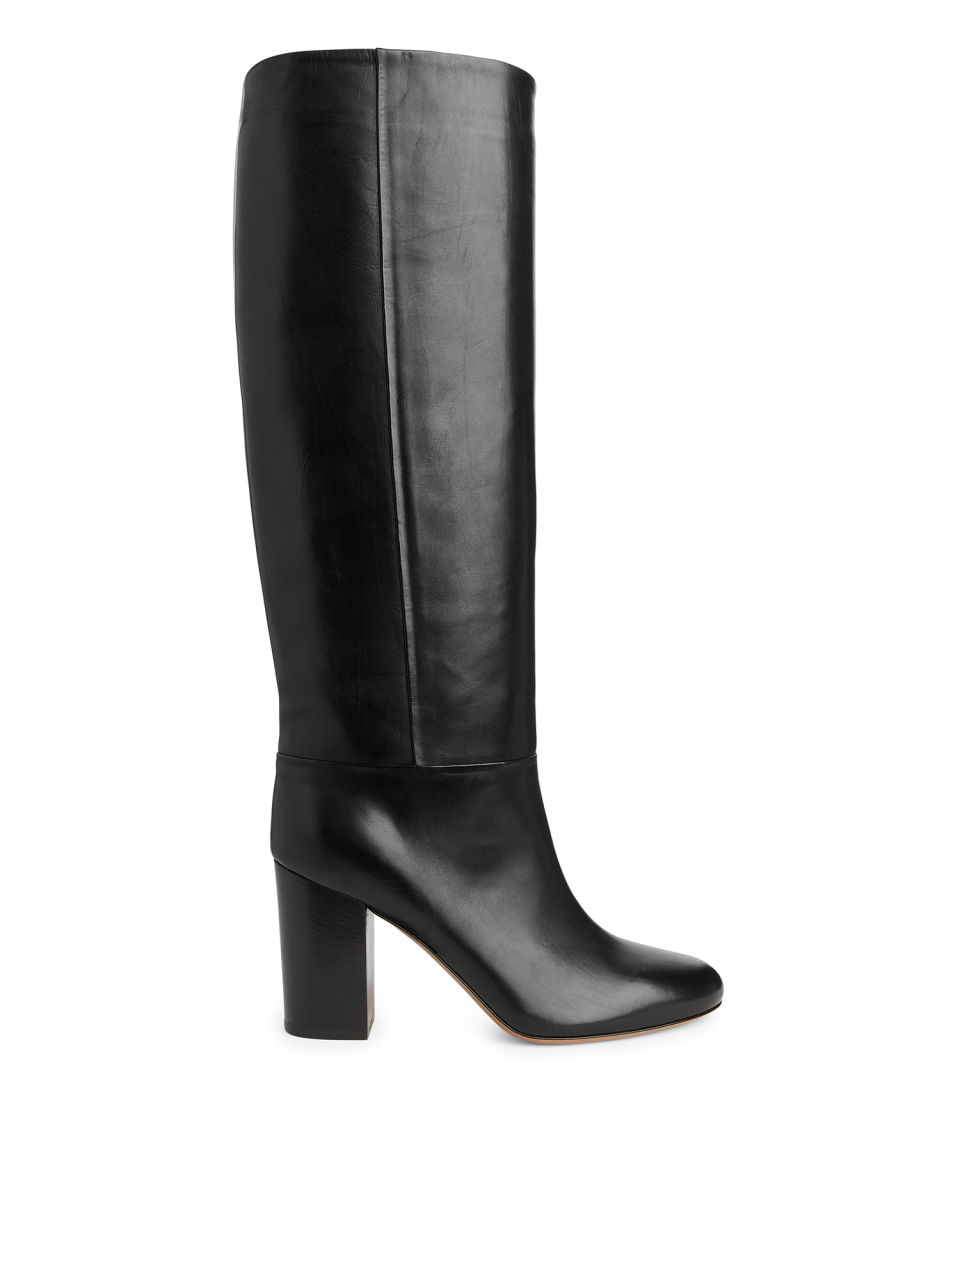 High-Heel Leather Boots - Black